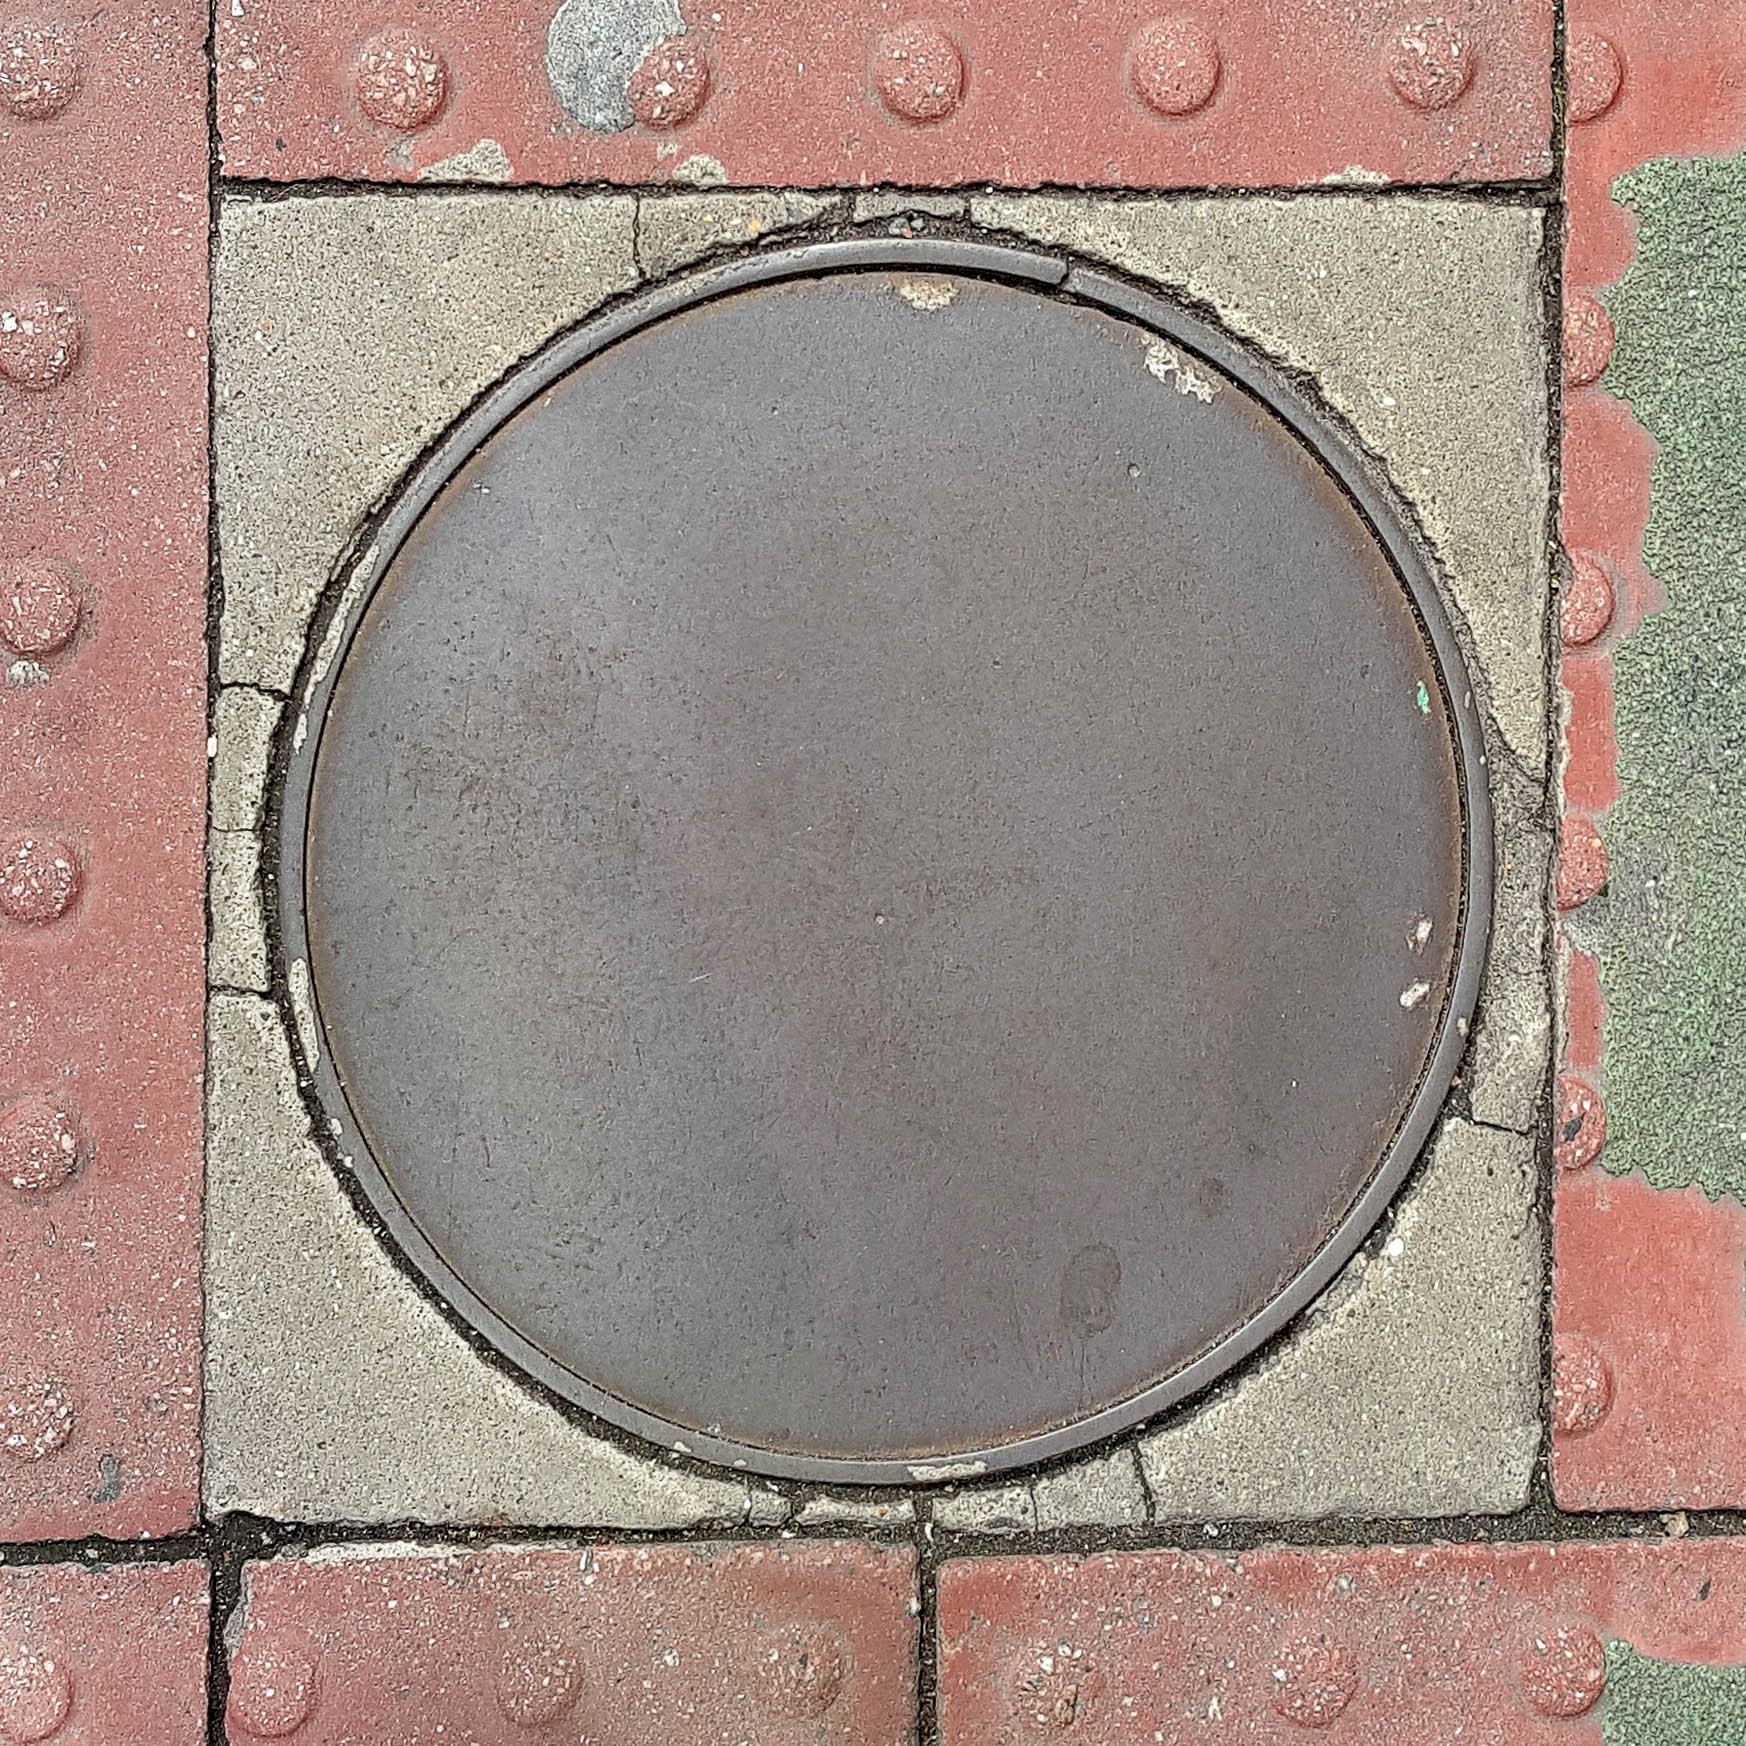 Manhole Cover, London - Smooth cast iron